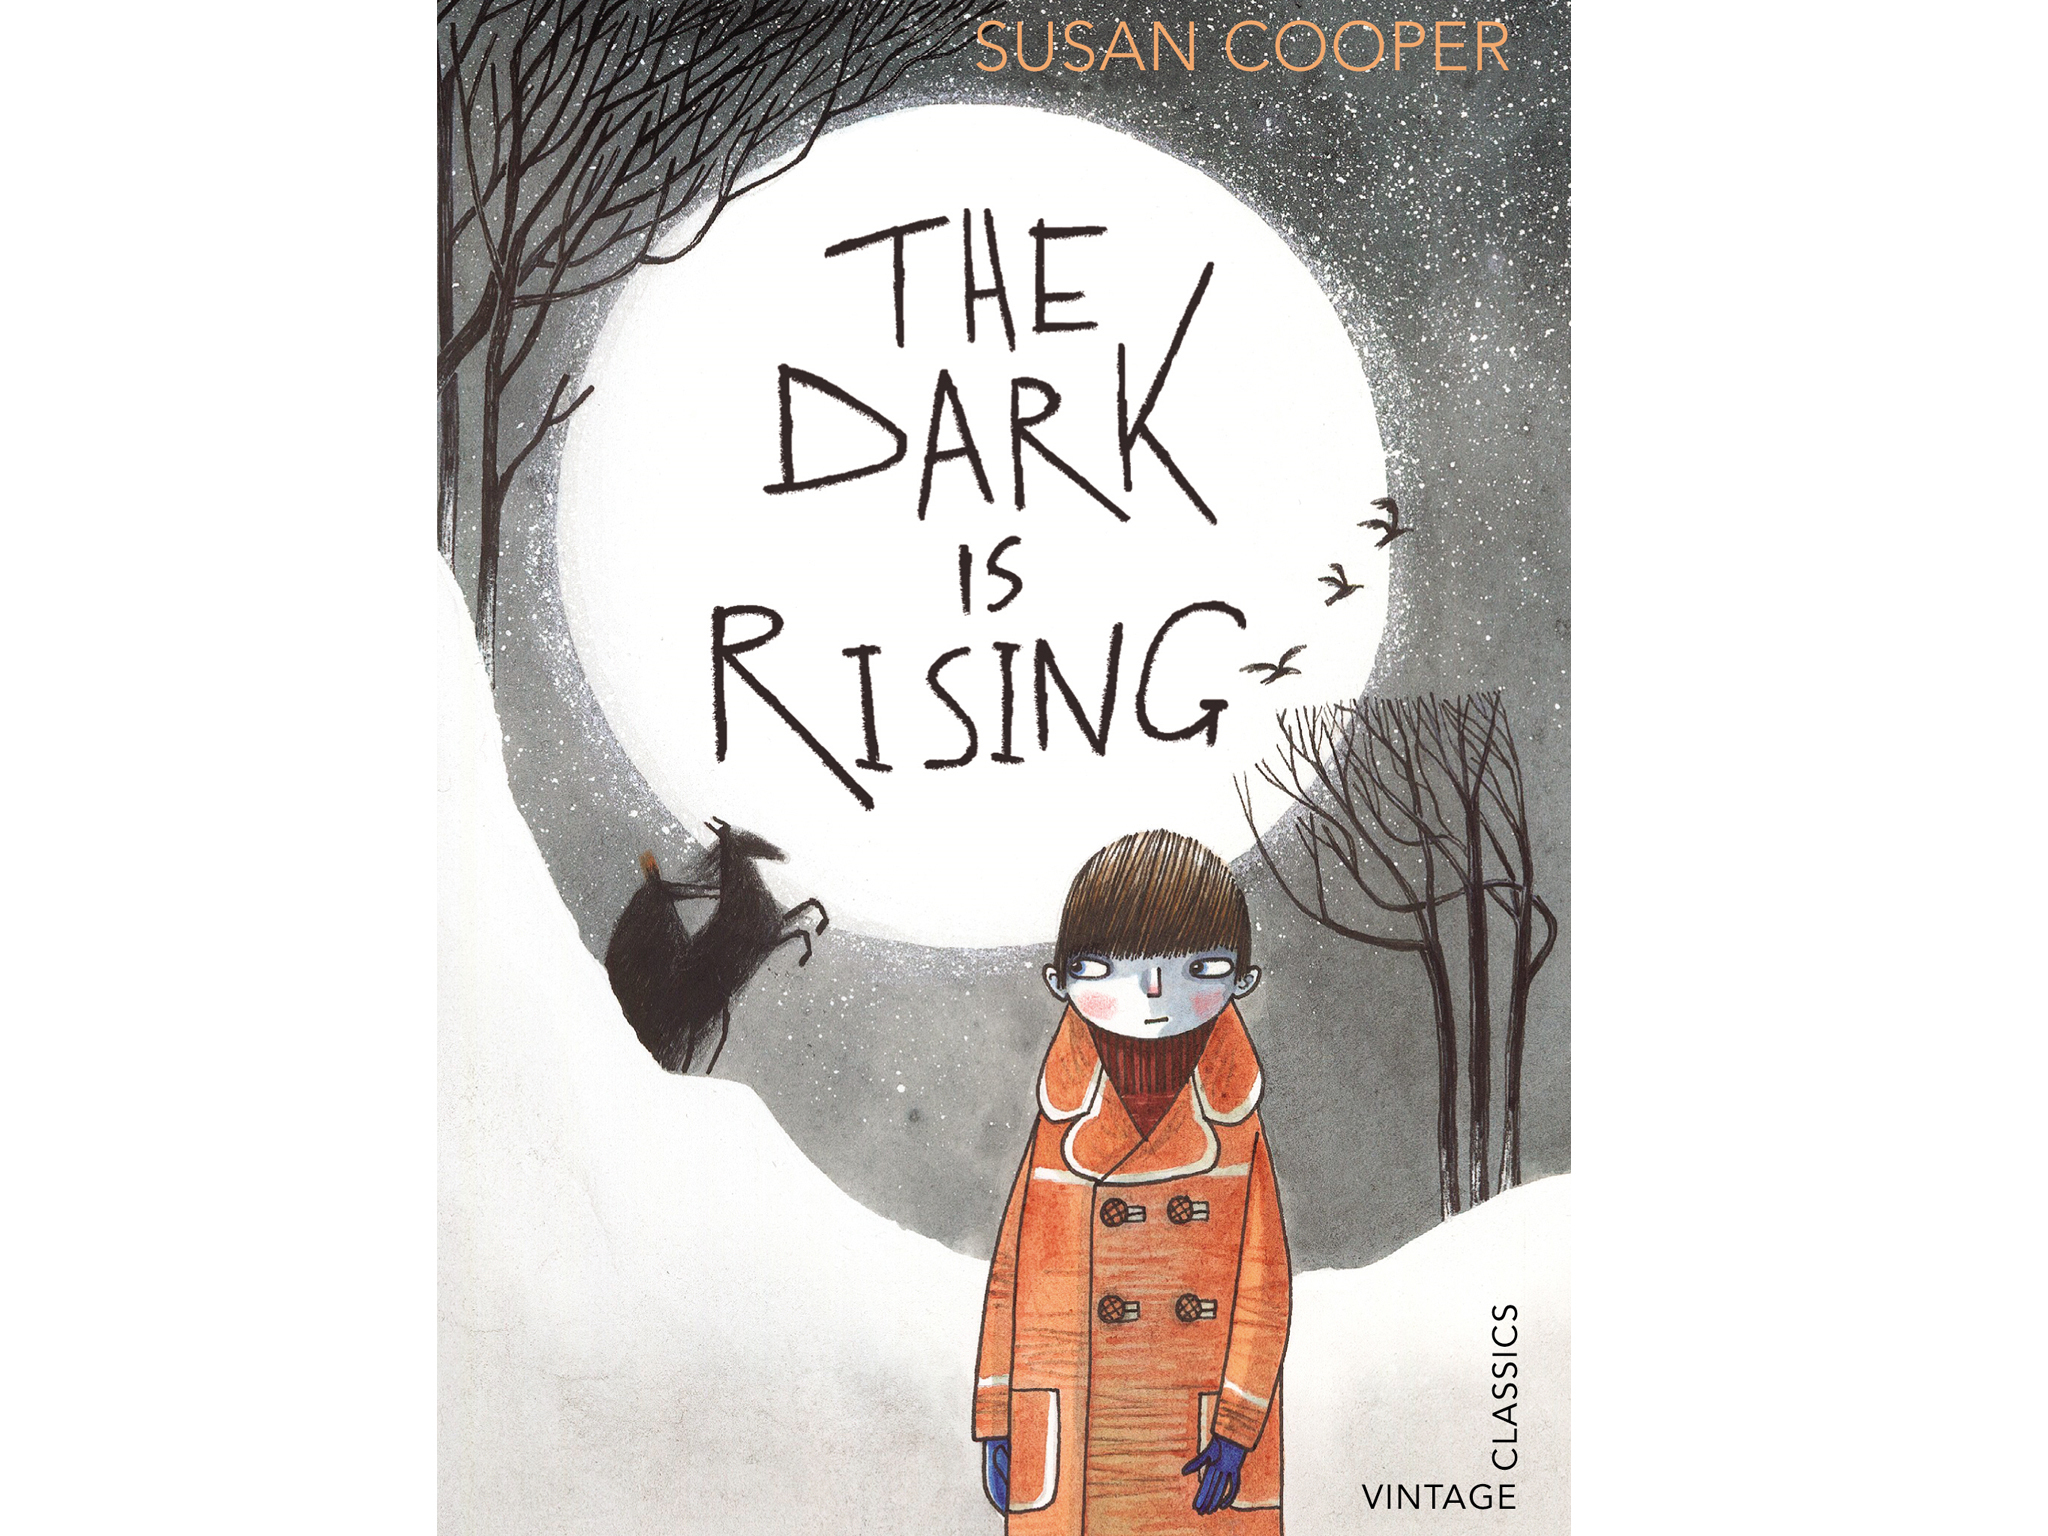 100 best children's books: The Dark is Rising